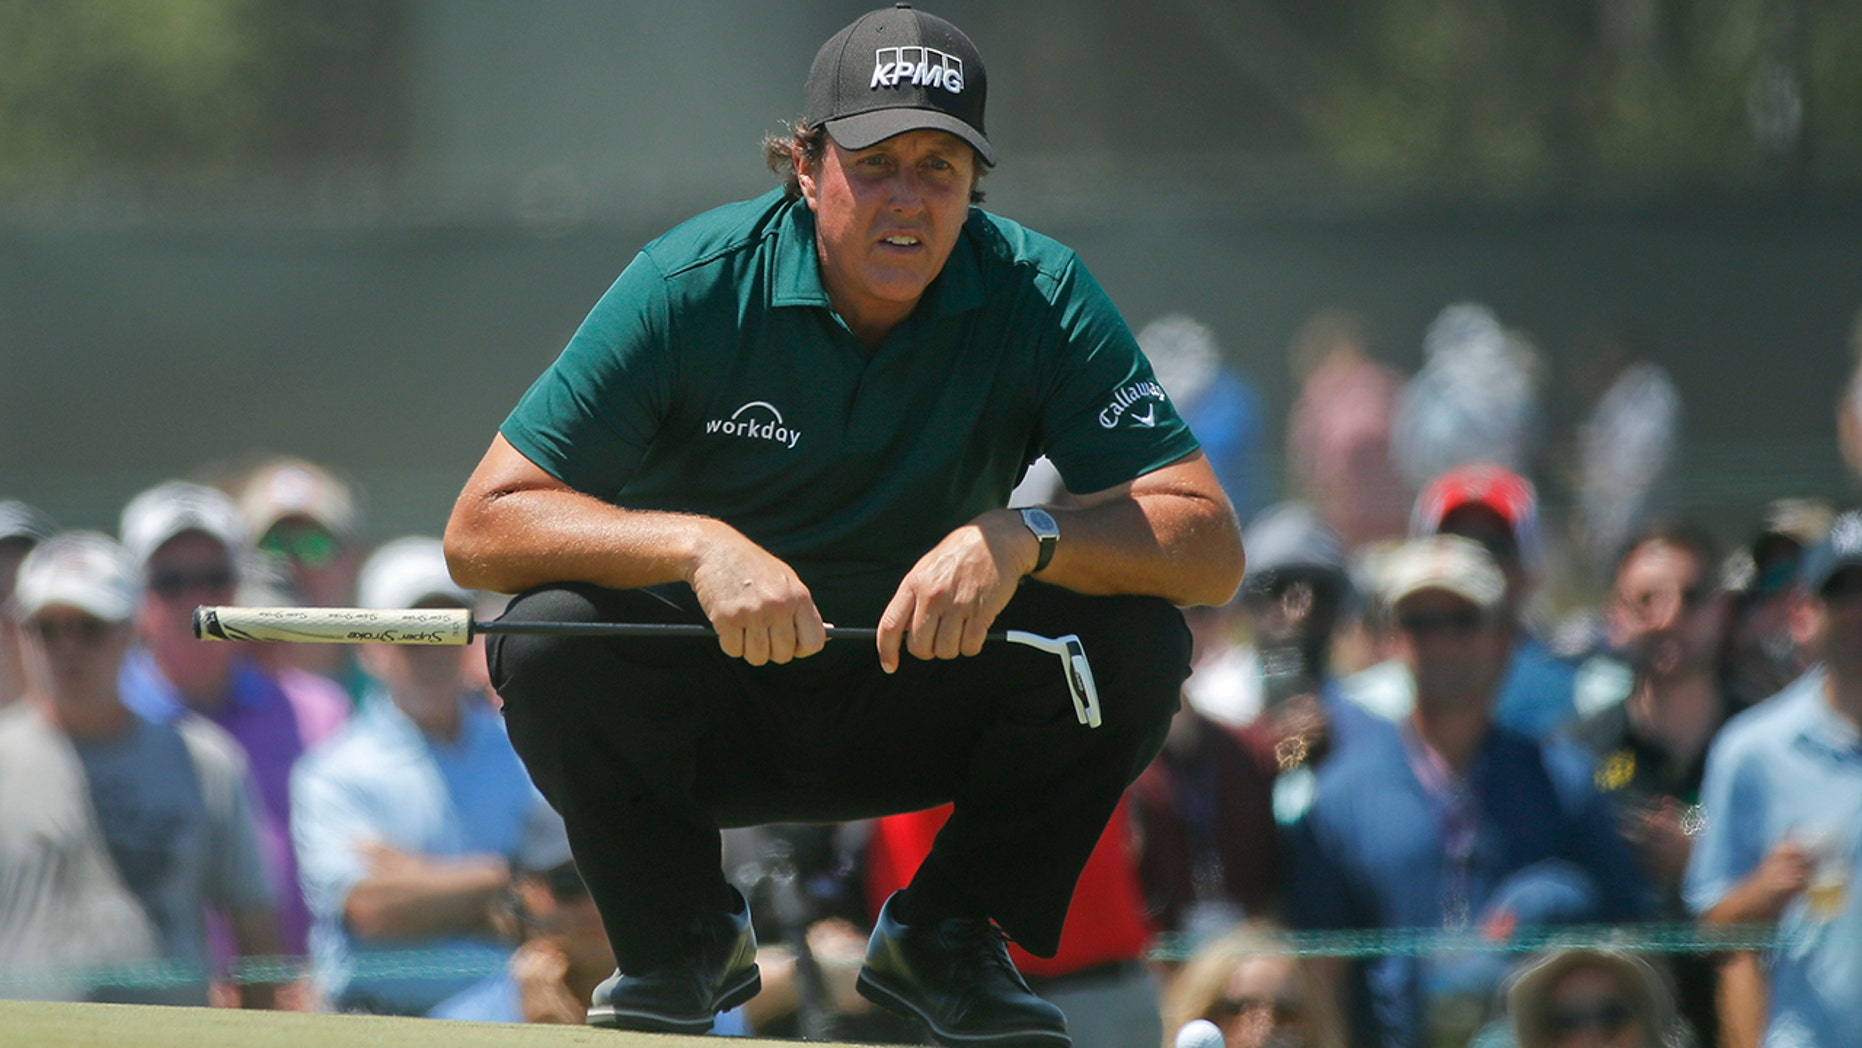 Phil Mickelson lines up a shot on the fourth green during the third round of the U.S. Open Golf Championship, in Southampton, N.Y., June 16, 2018.